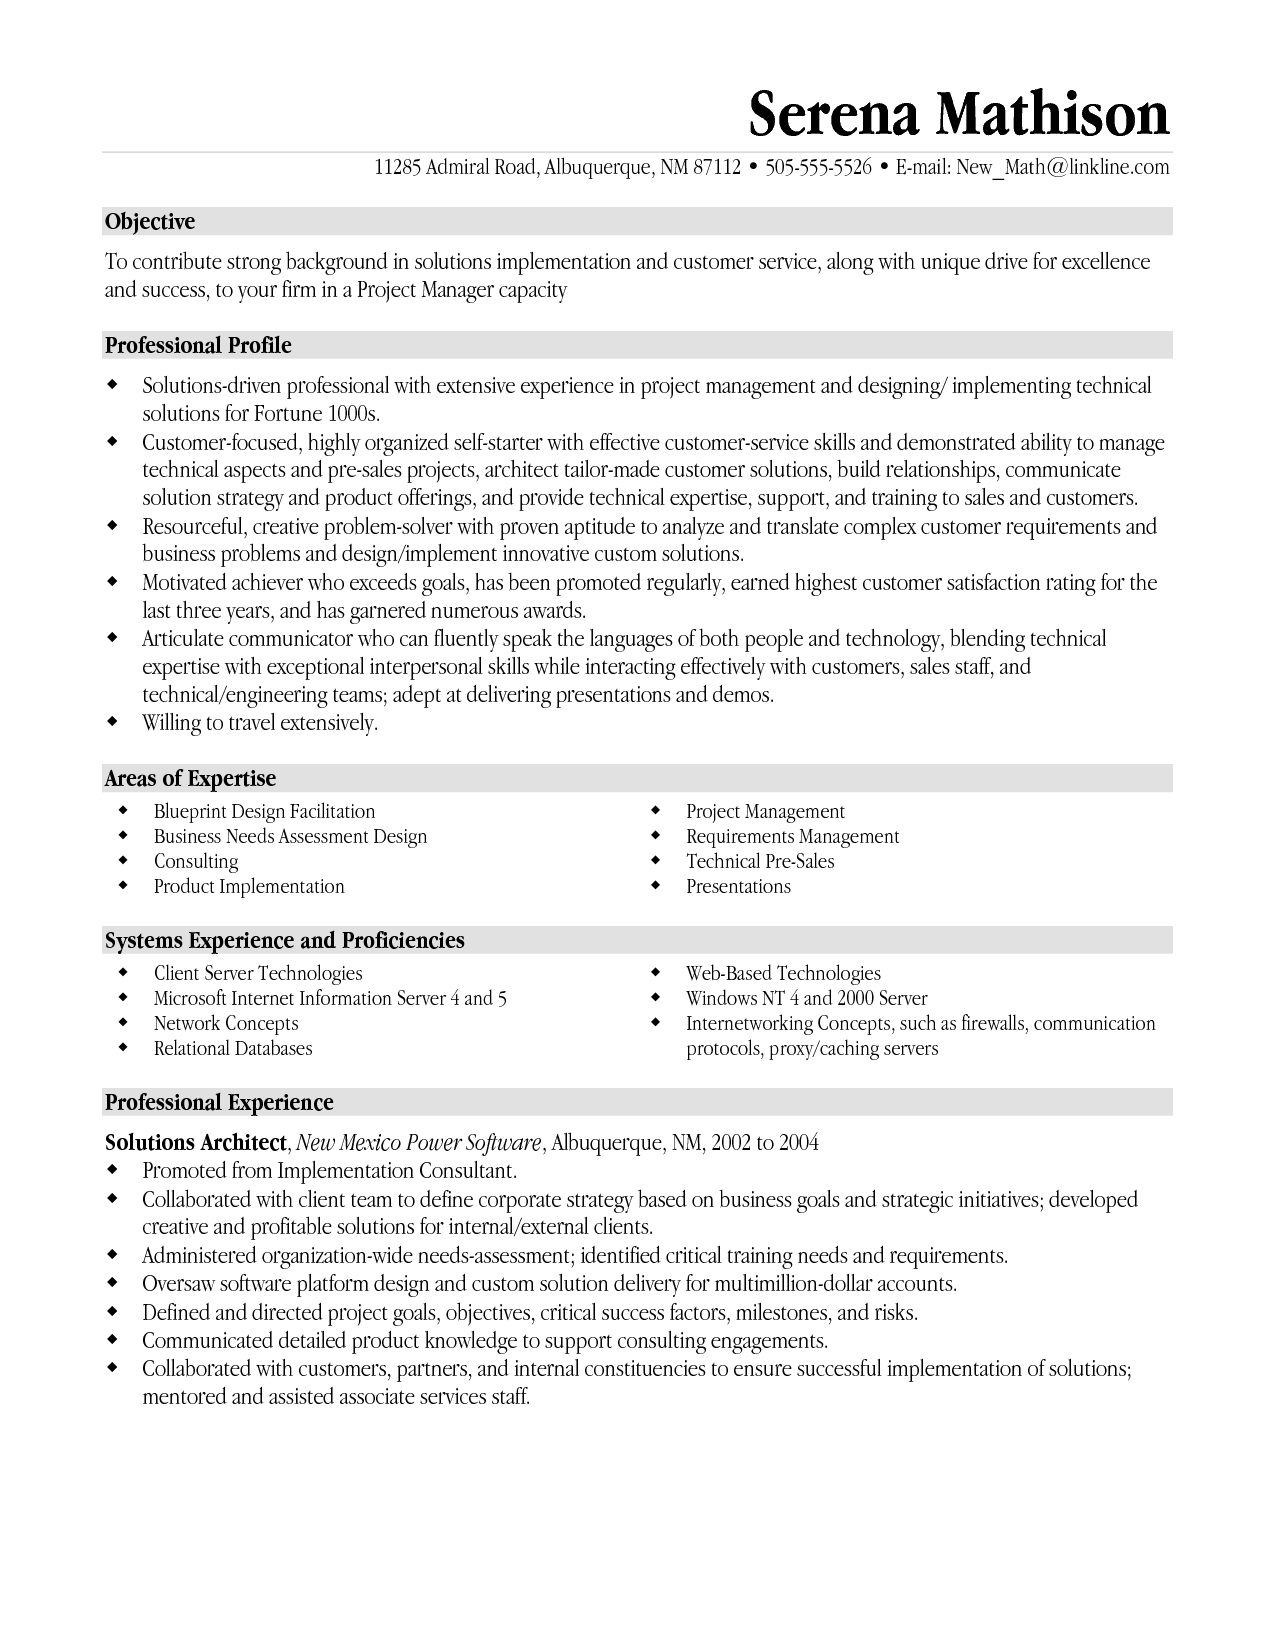 Resume Templates Project Manager | Project Management Resume  Management Resume Templates